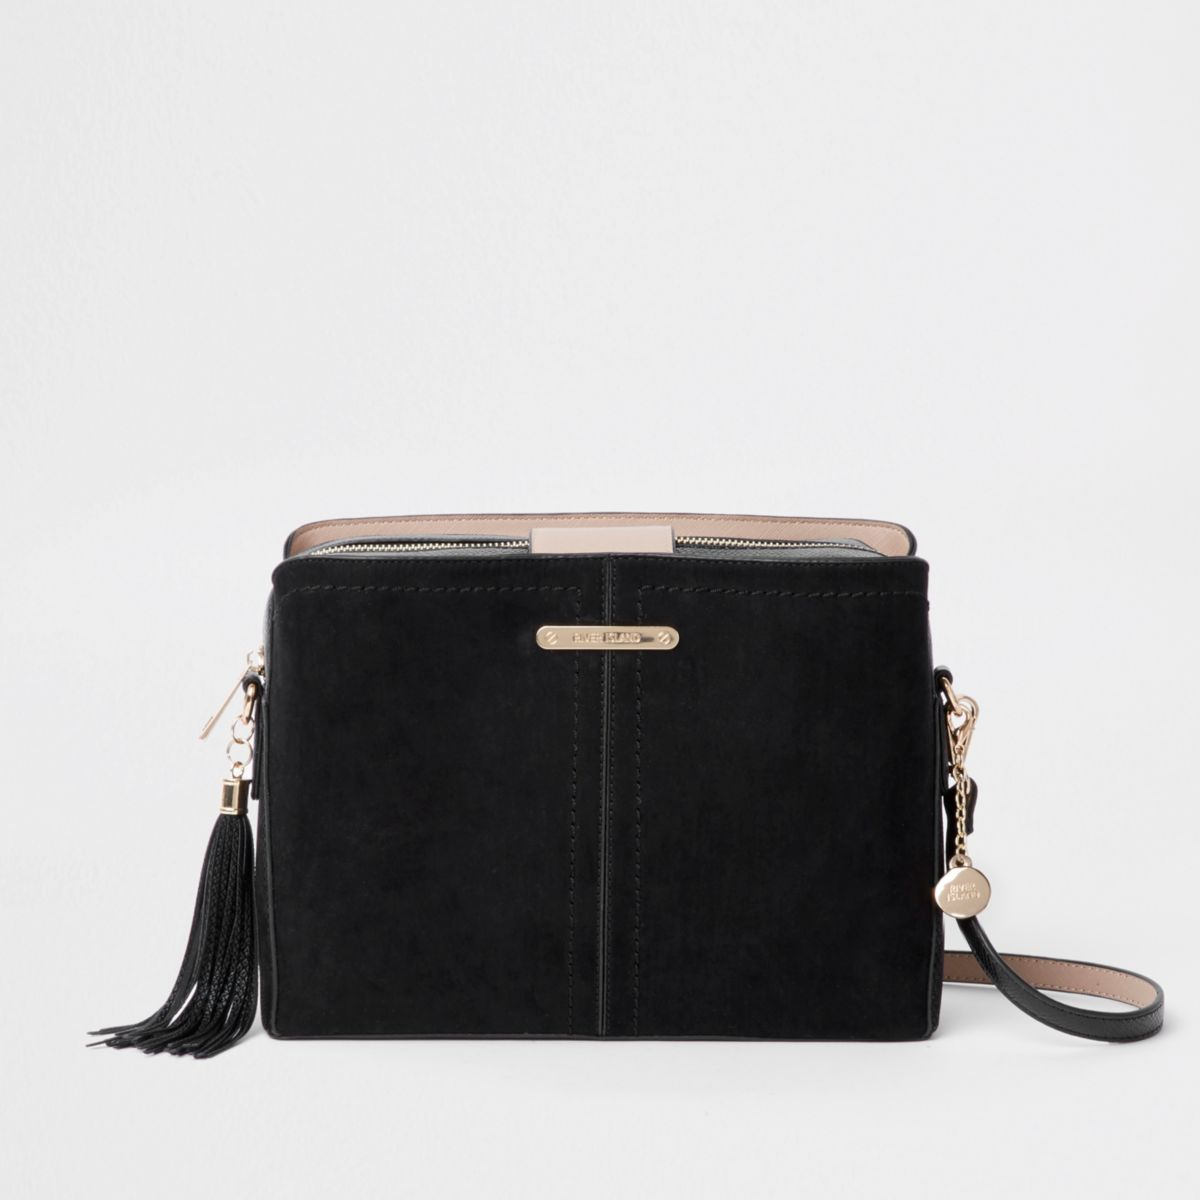 Black open top triple compartment bag